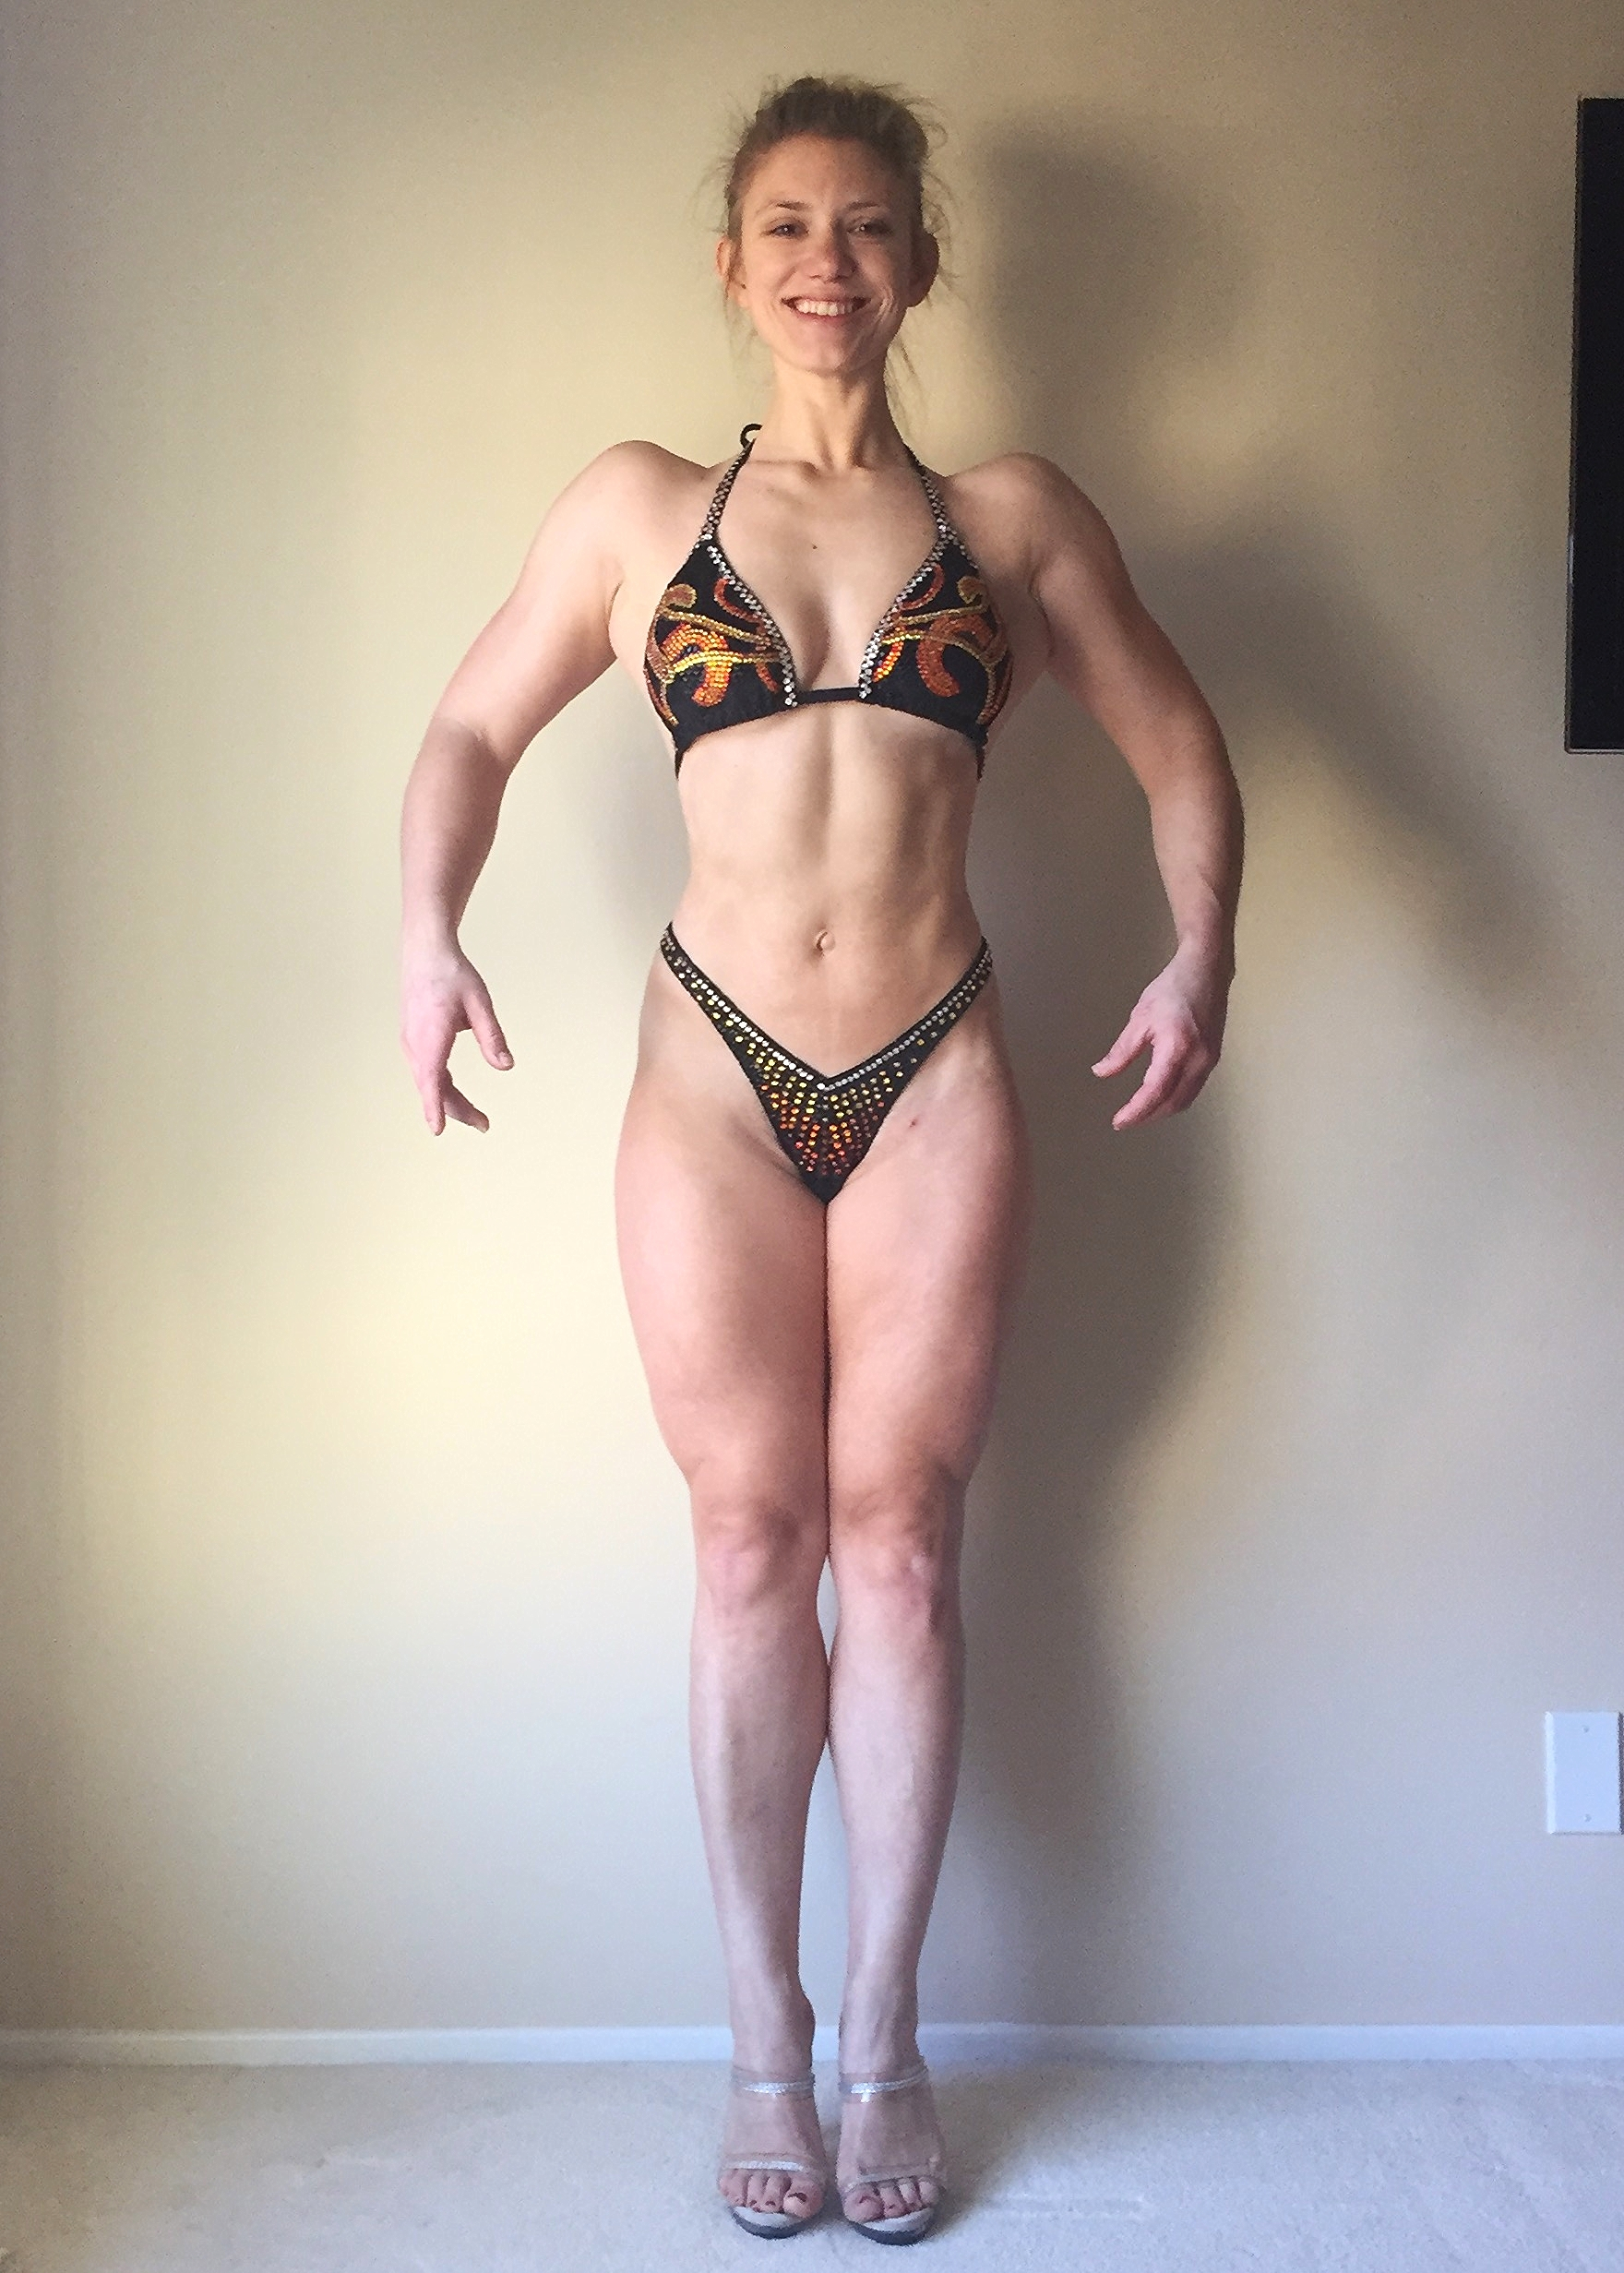 1 Week Out | My Engineered Prep